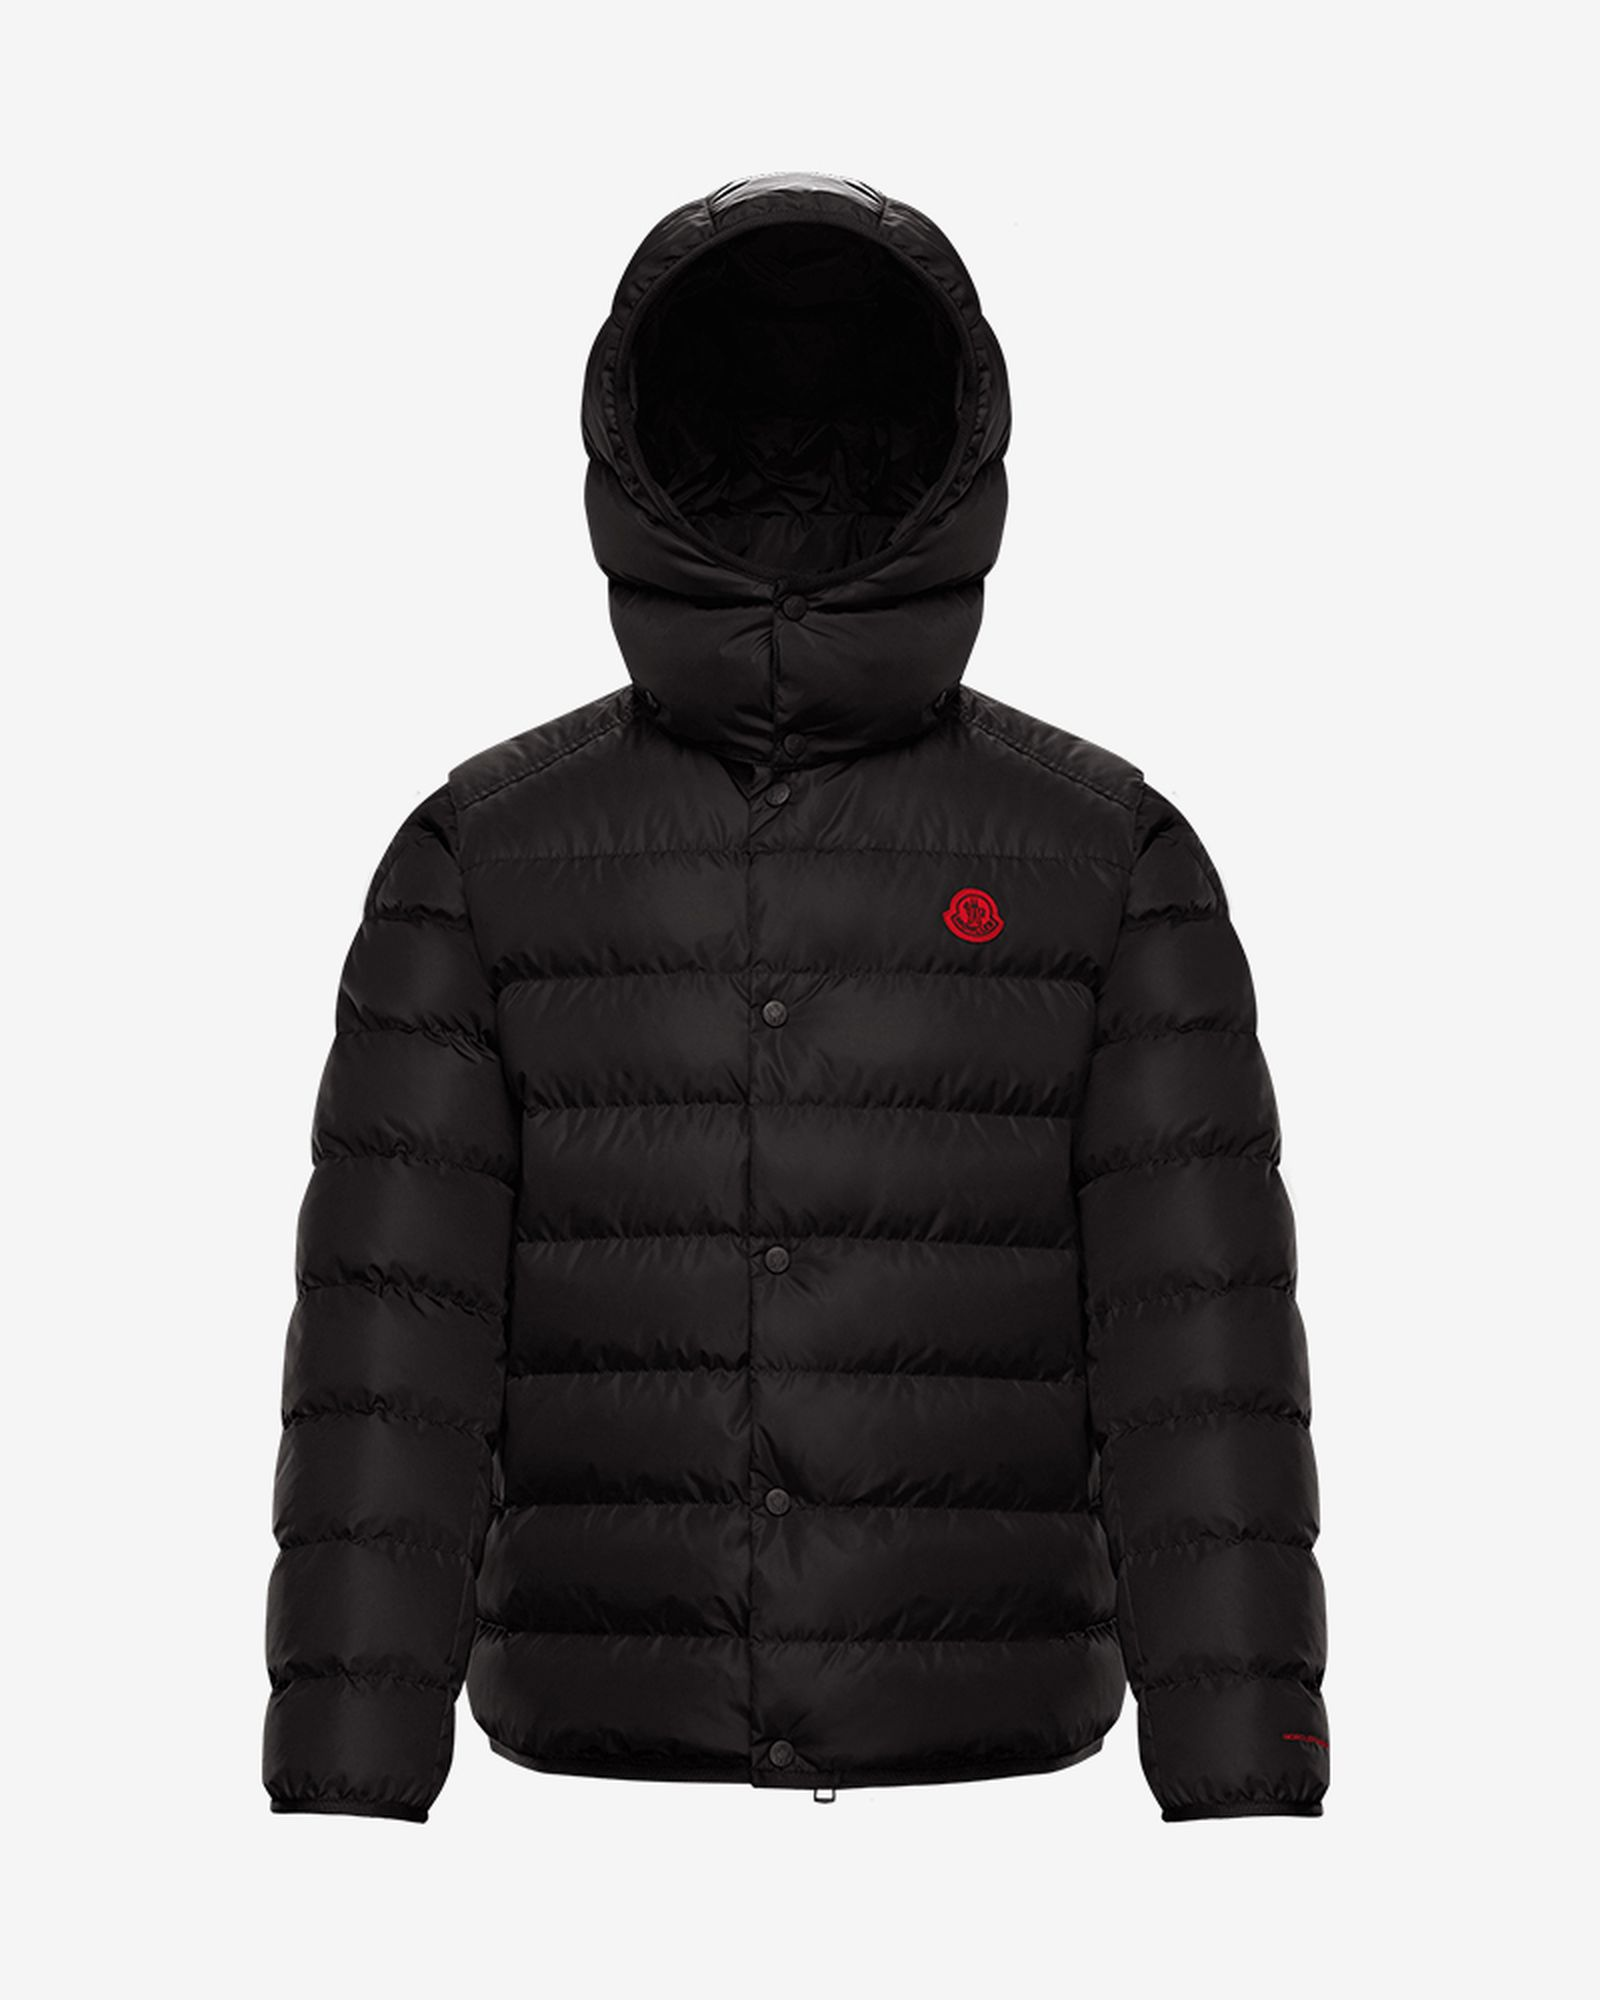 sustainable-moncler-jackets-11